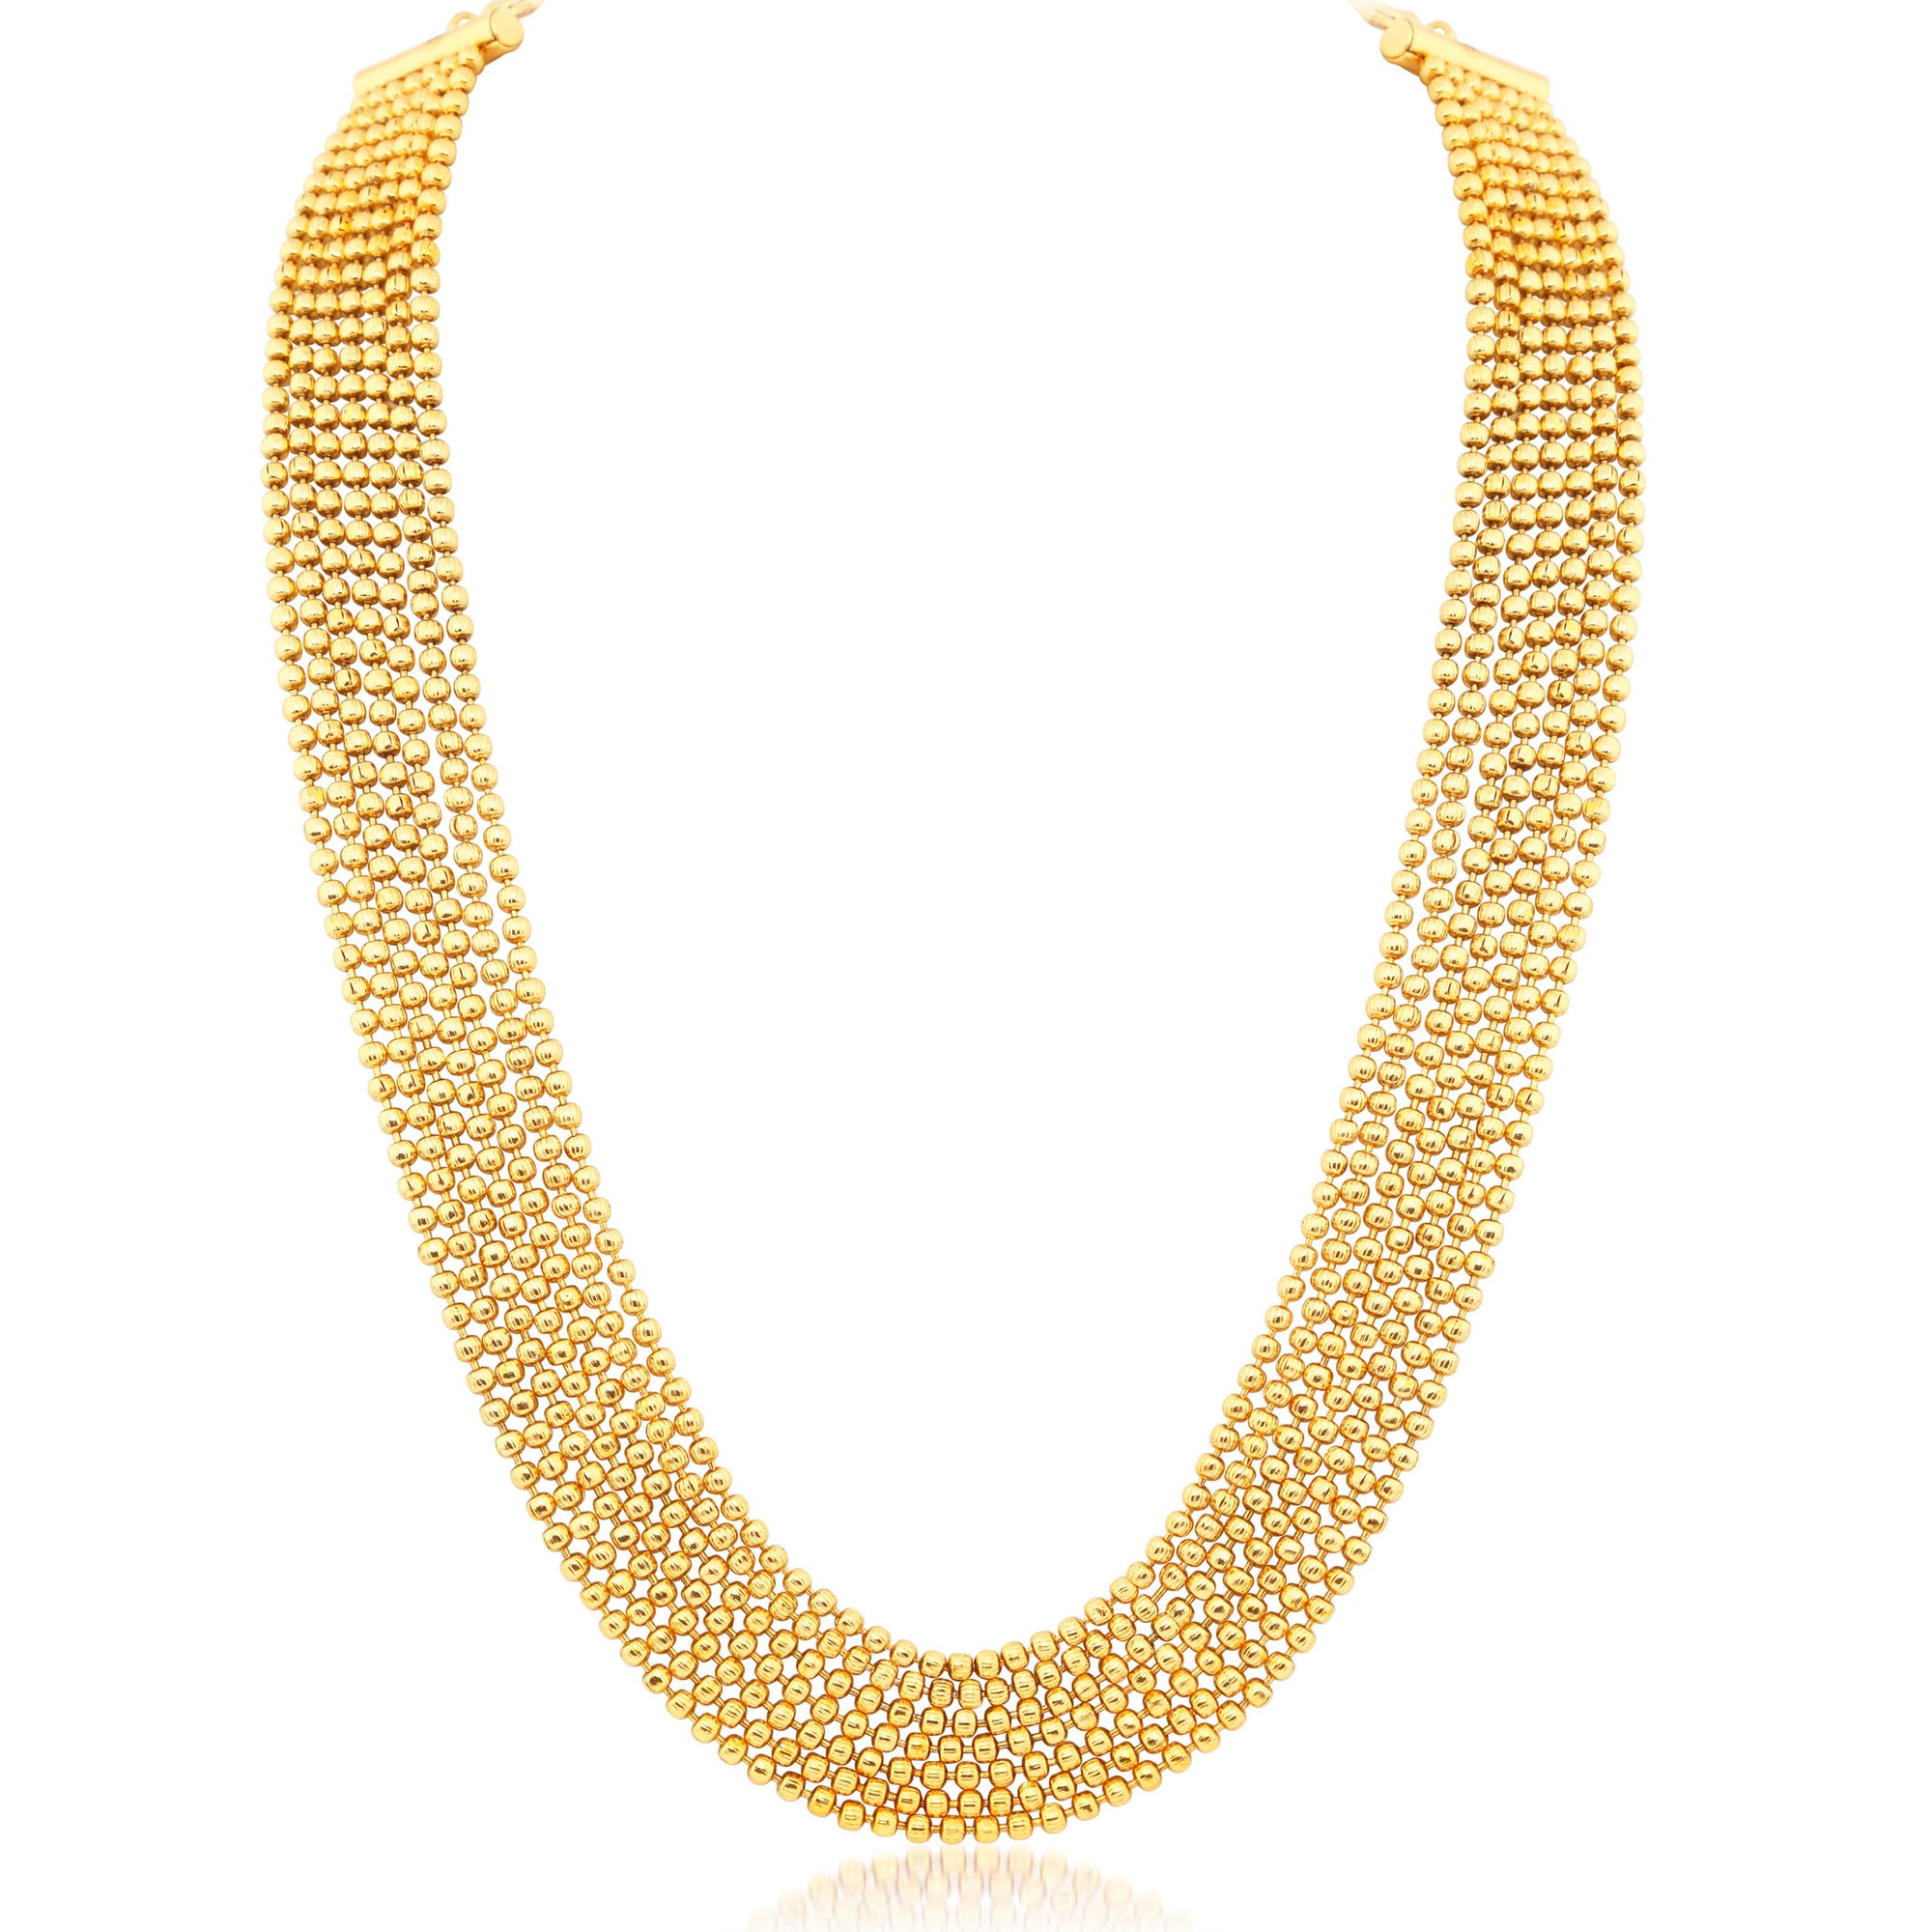 Sukkhi Amazing 7 String Gold Plated Necklace set For Women  sc 1 st  Sukkhi.com & Sukkhi Ritzy 7 String Gold Plated Necklace For Women - Sukkhi.com